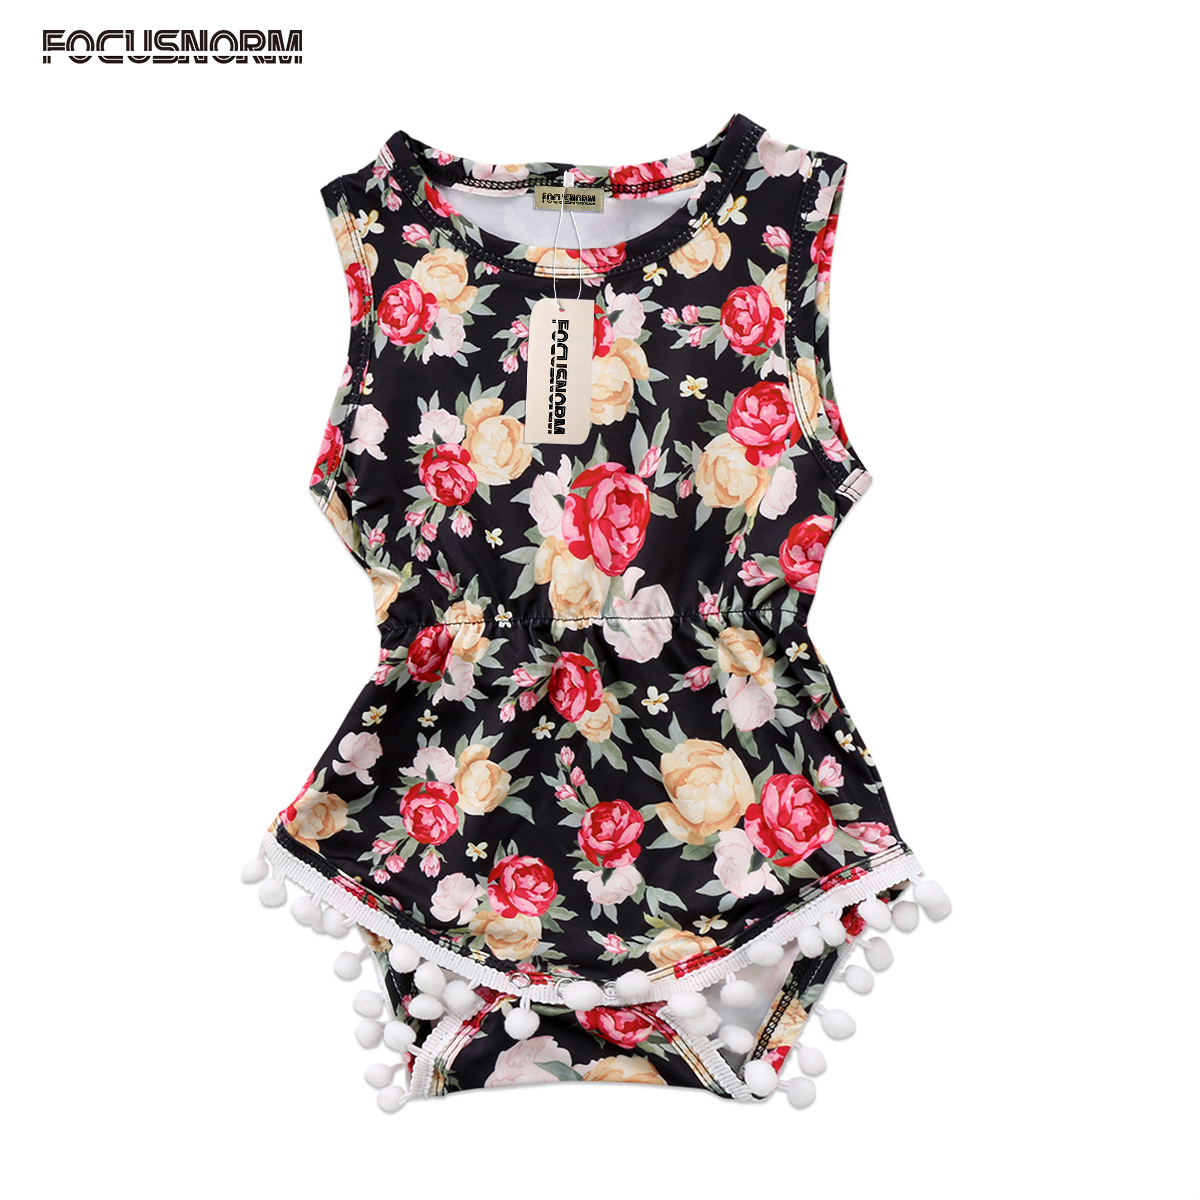 Newborn Infant Baby Girls Sleeveless Tassels Romper Floral Sunsuit Clothes Summer Outfits Set